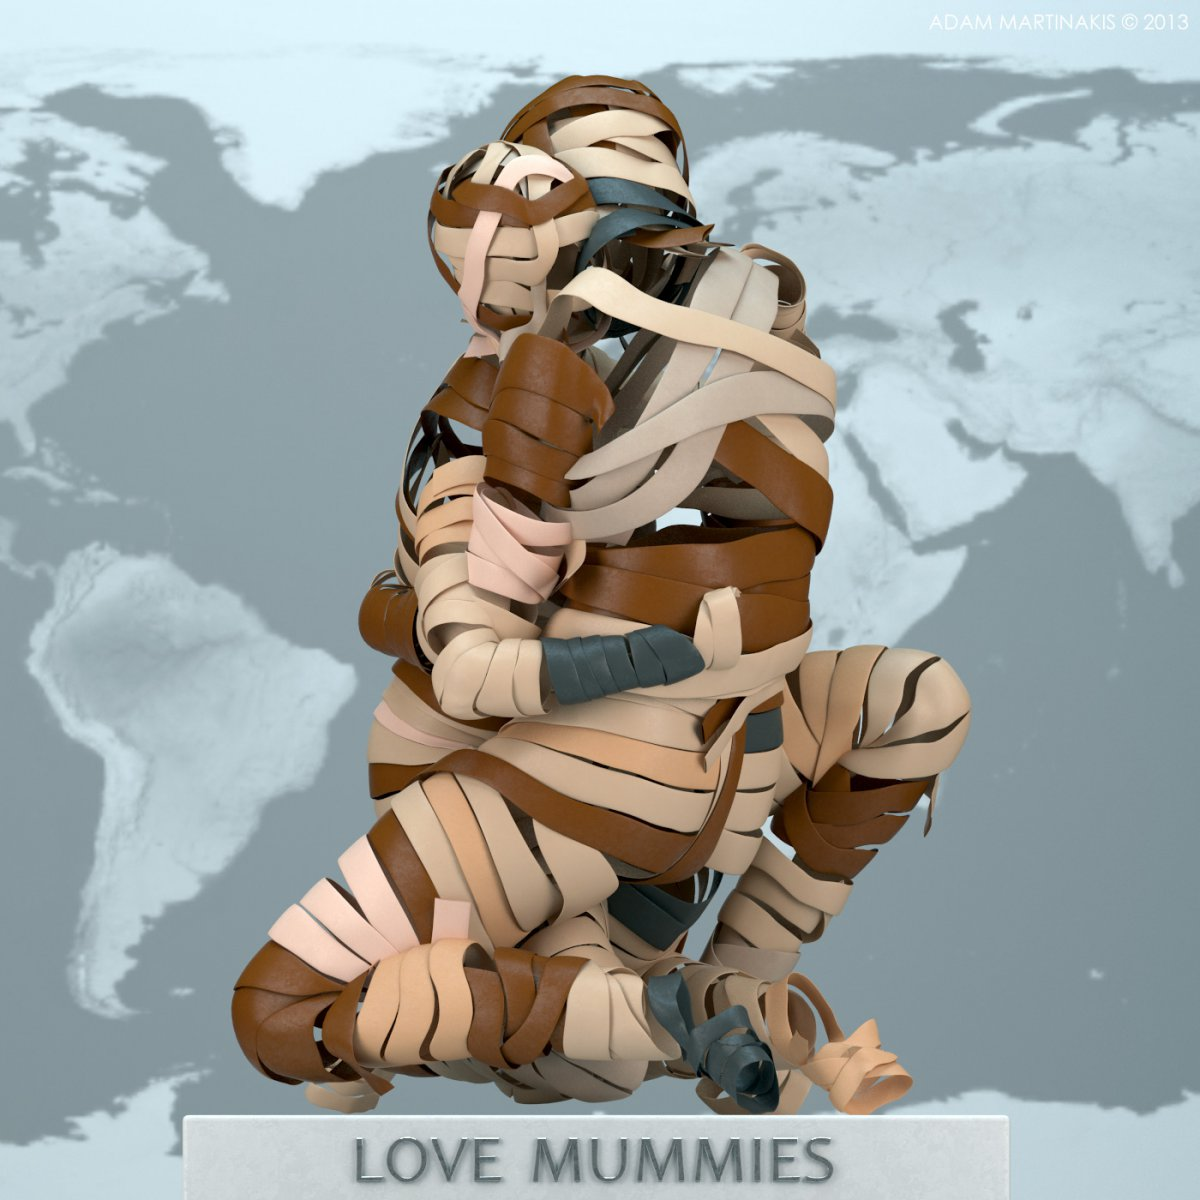 It doens´t matter which skin Color you wear, everyone can become a Mummy! - LOVE MUMMIES - Adam Martinakis